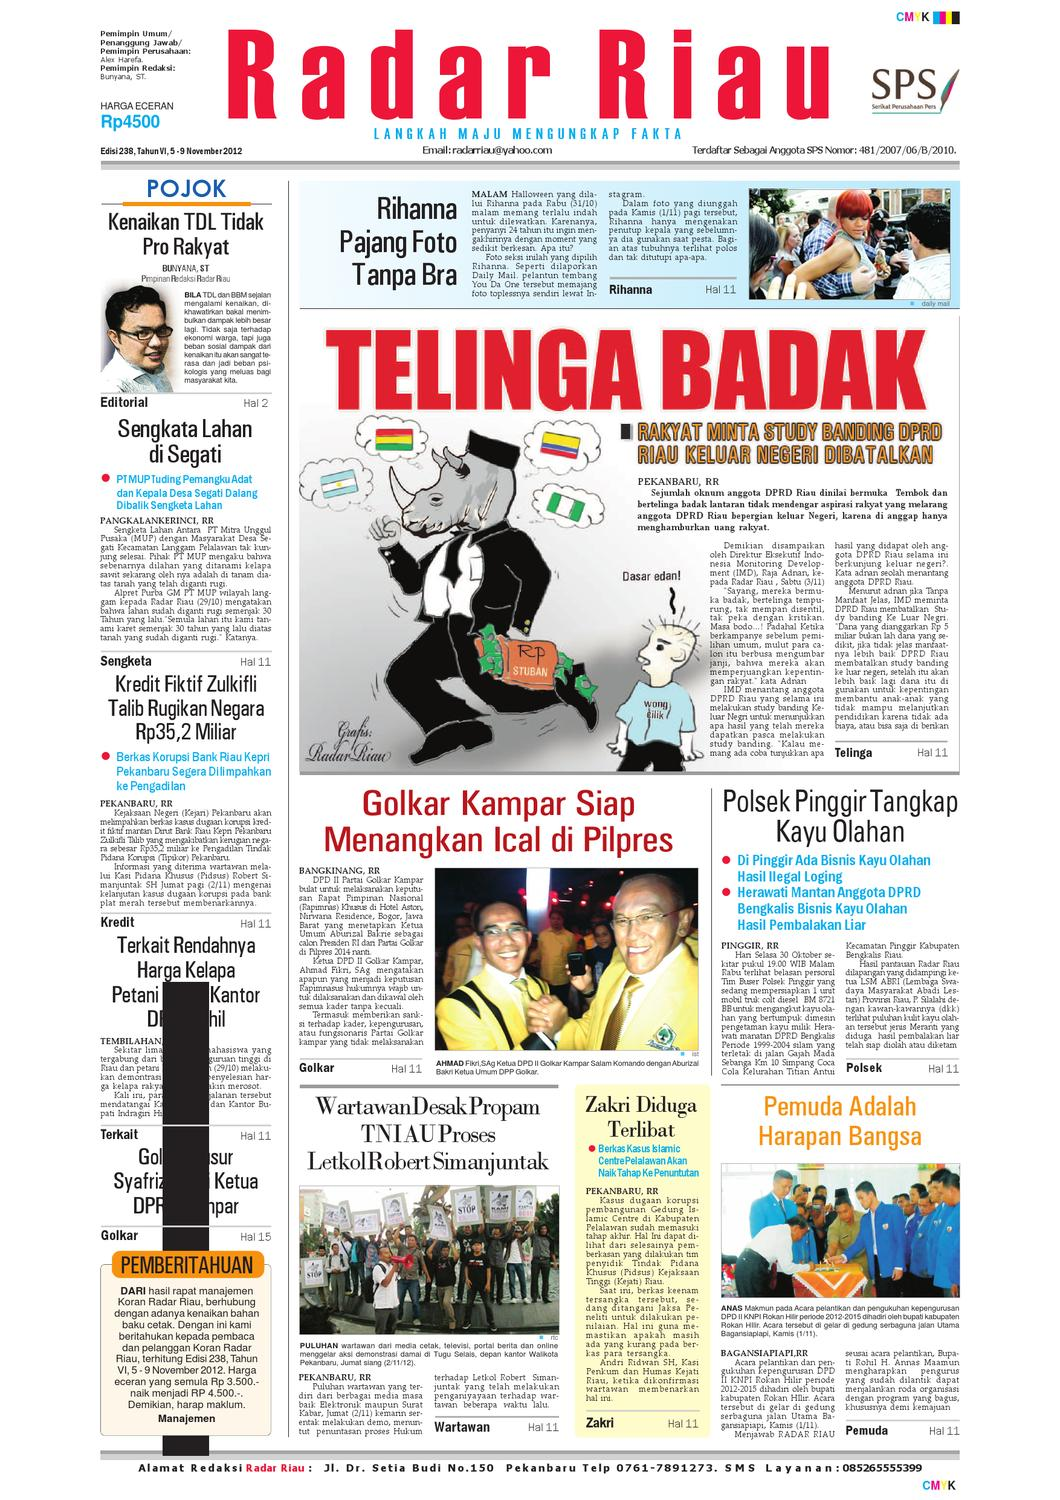 RADAR RIAU EDISI 238 5-9 NOVEMBER 2012 by RADAR RIAU - issuu 4c773d1768